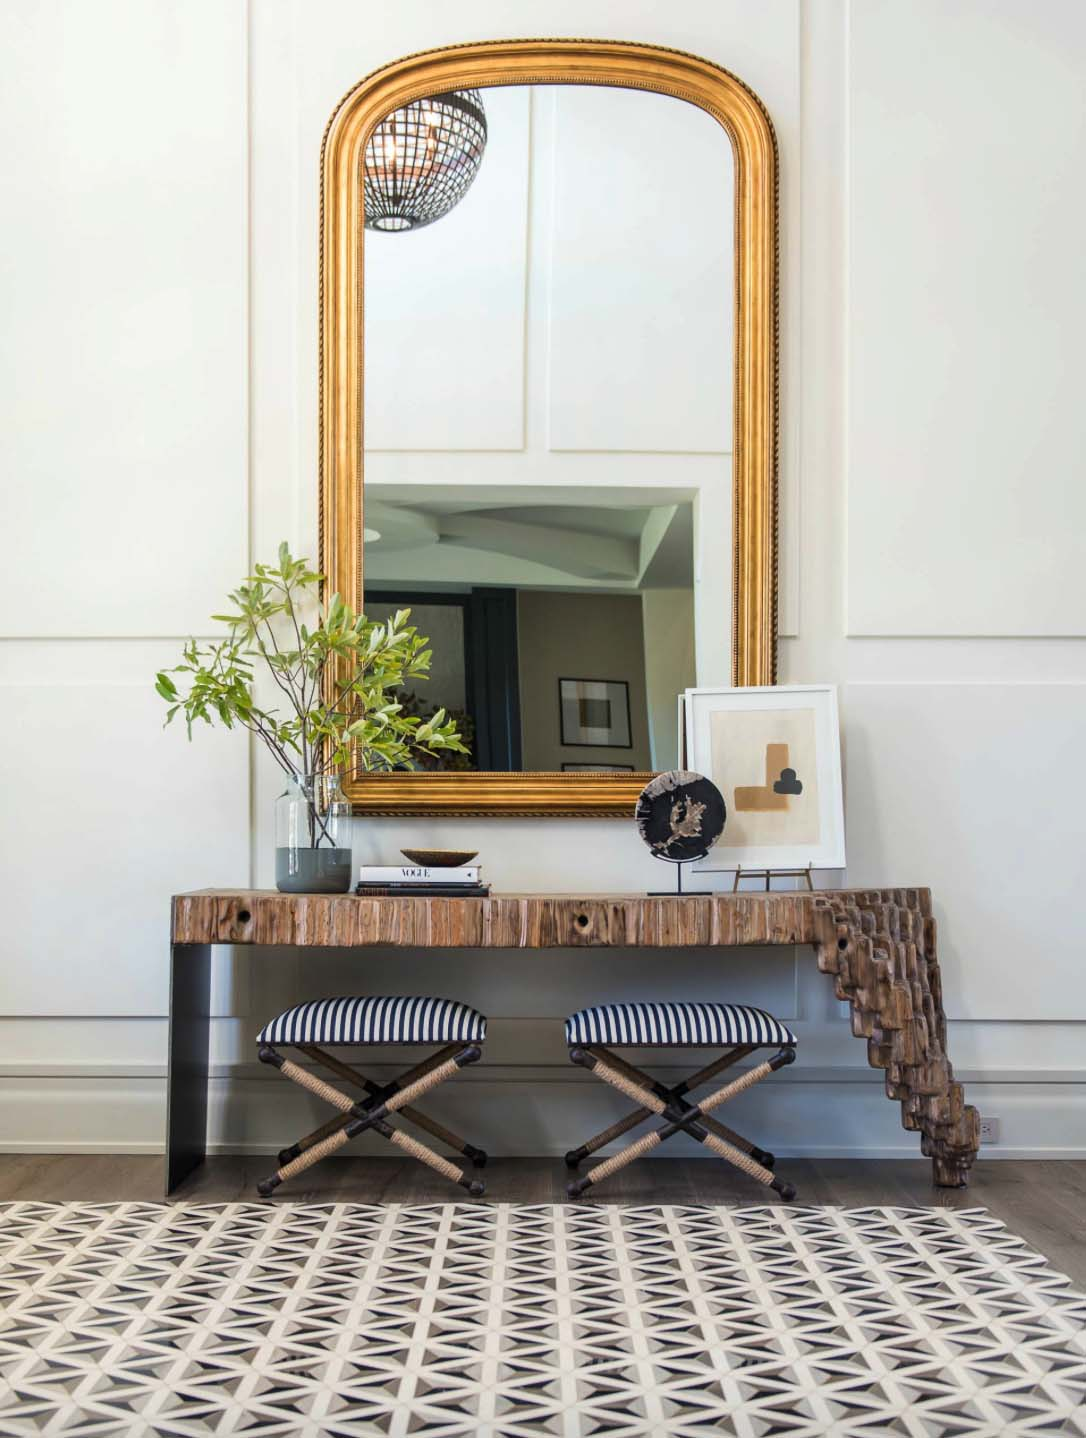 console table designs The best Console Table Designs for Your Entryway The best Console Table Designs for Your Entryway 1